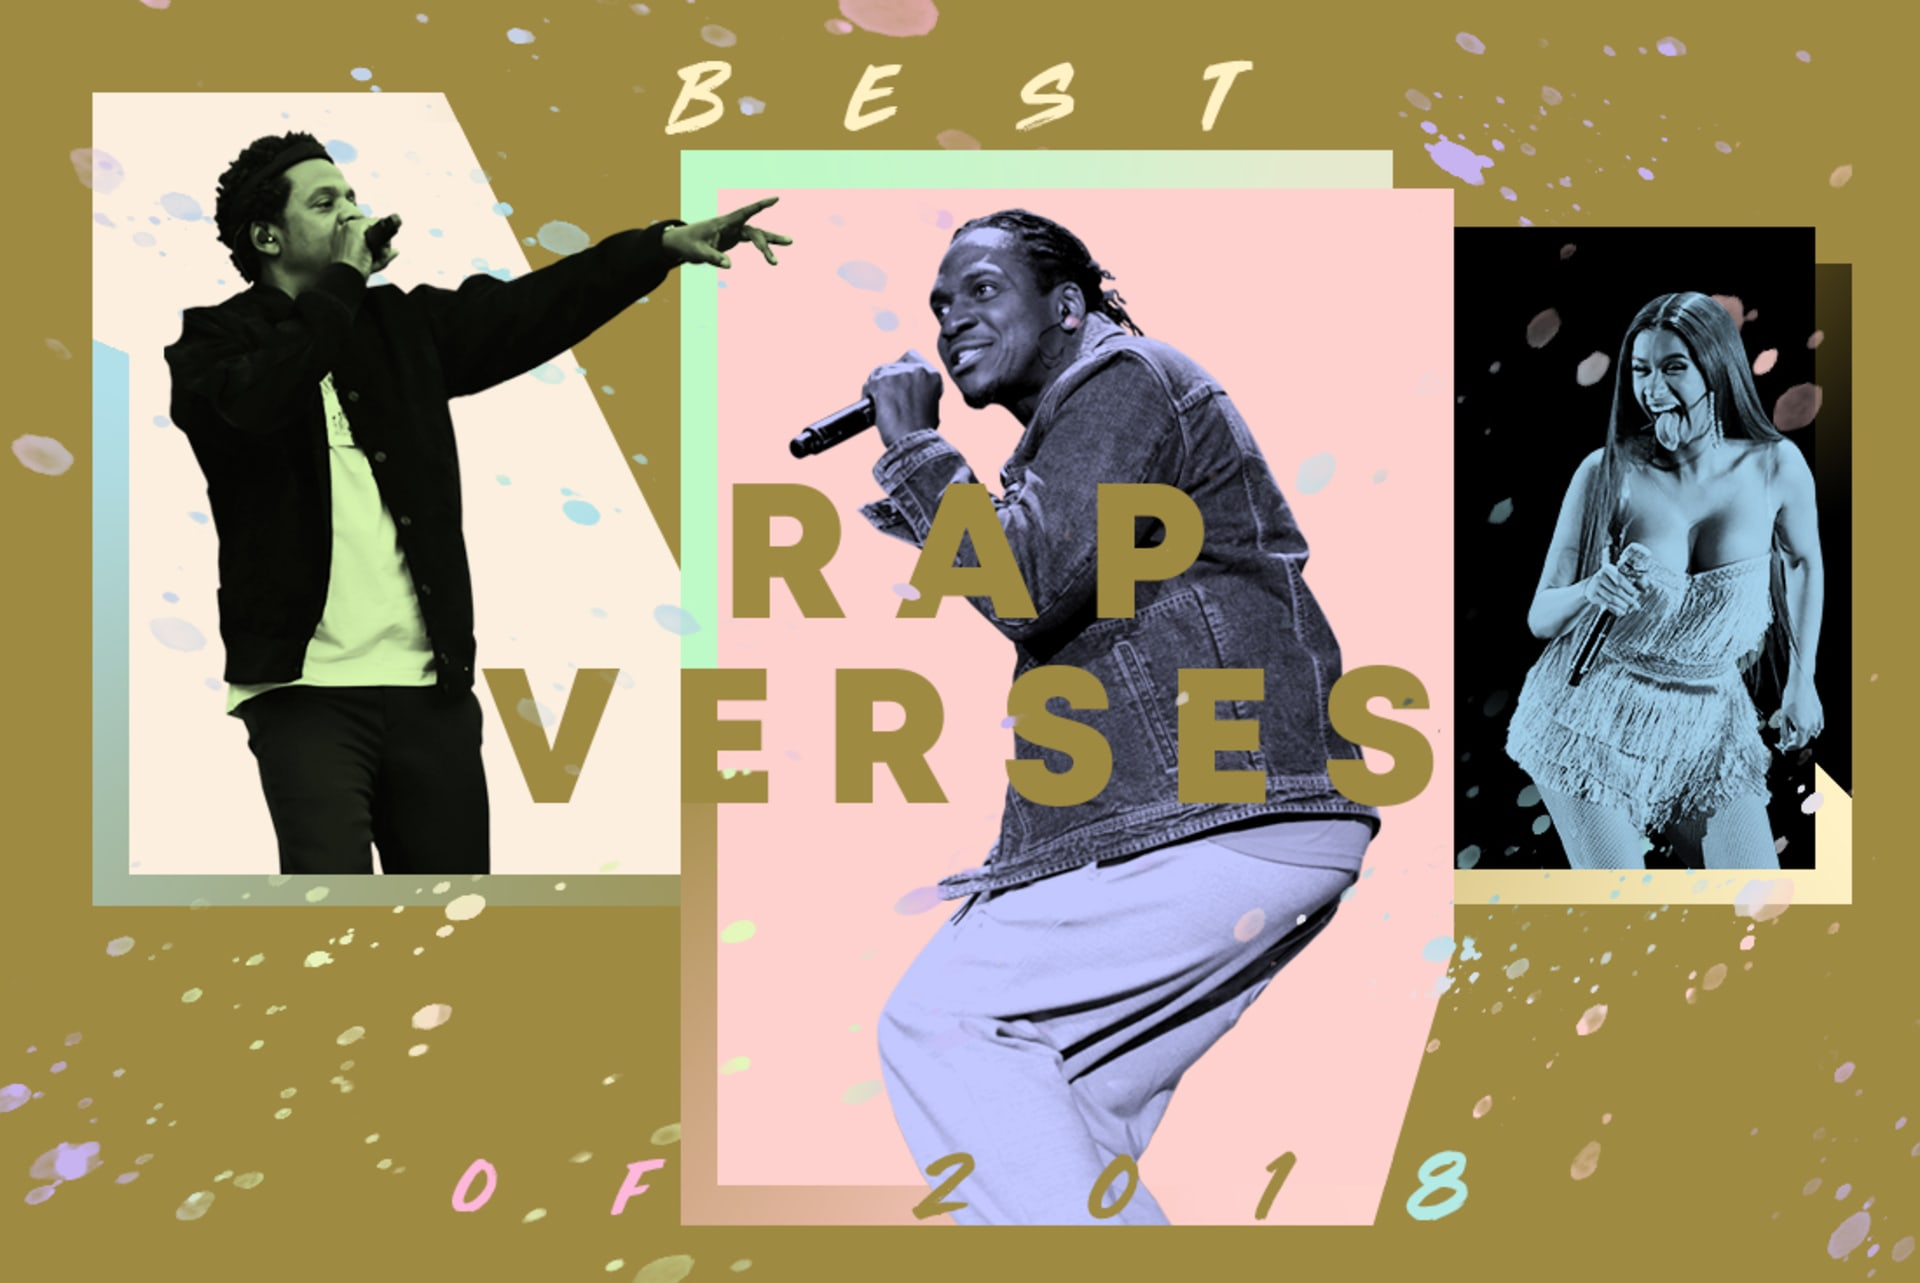 Complex's picks for the best rap verses of 2018.